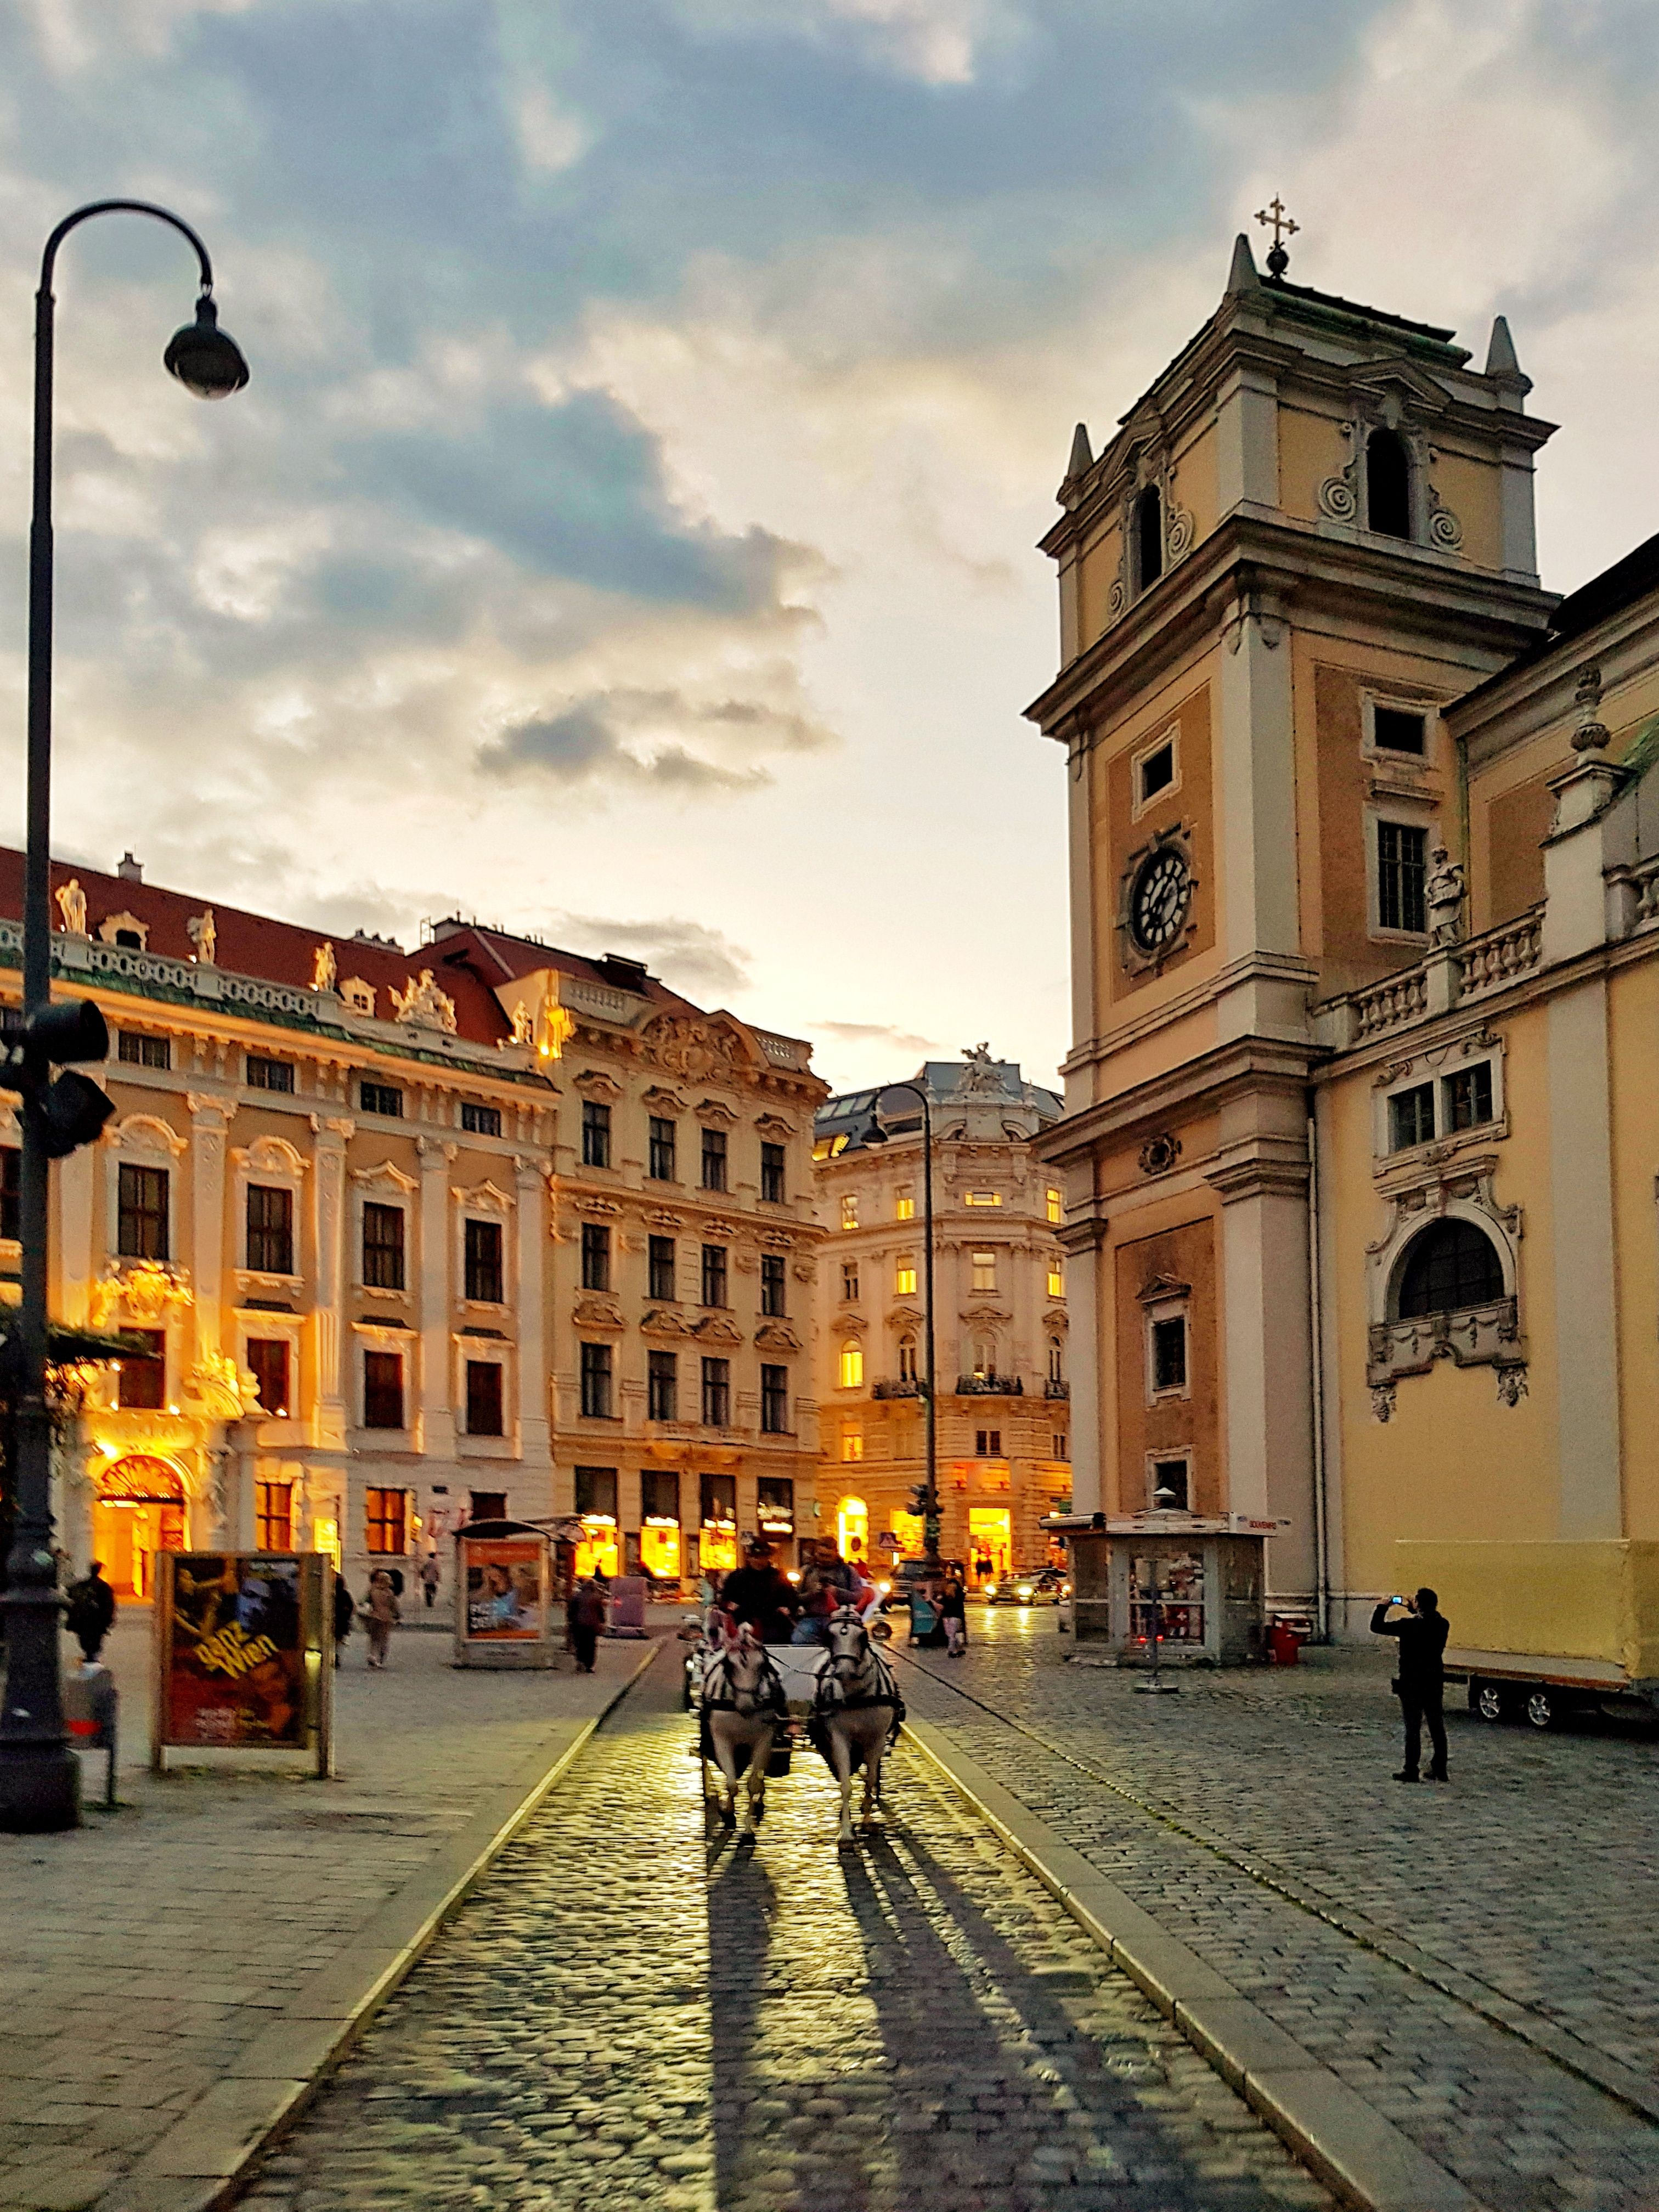 35 Photos that will make you want to visit Vienna, Austria